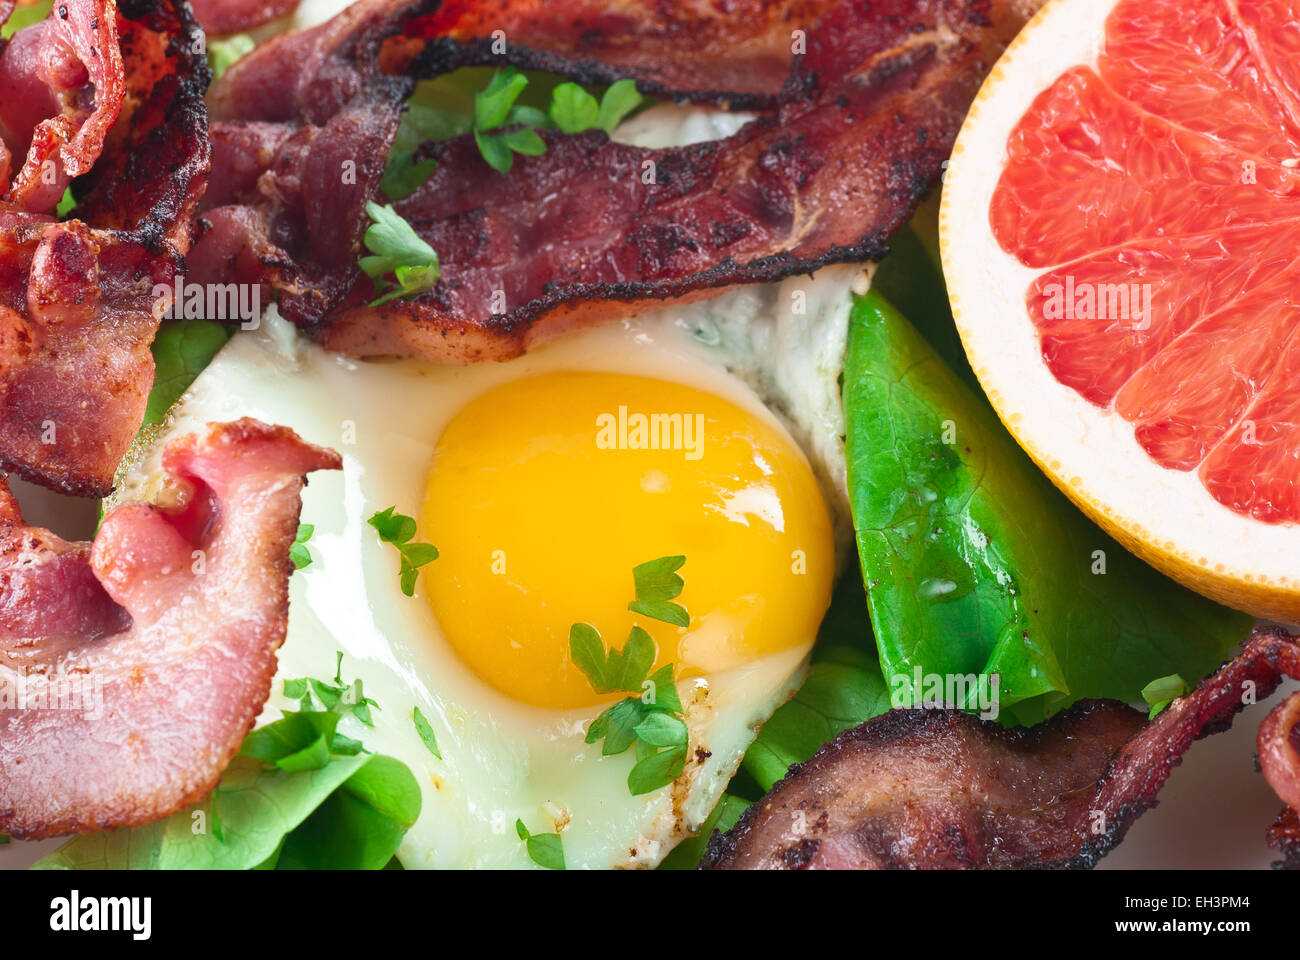 Fried egg with bacon, lettuce and grapefruit. - Stock Image